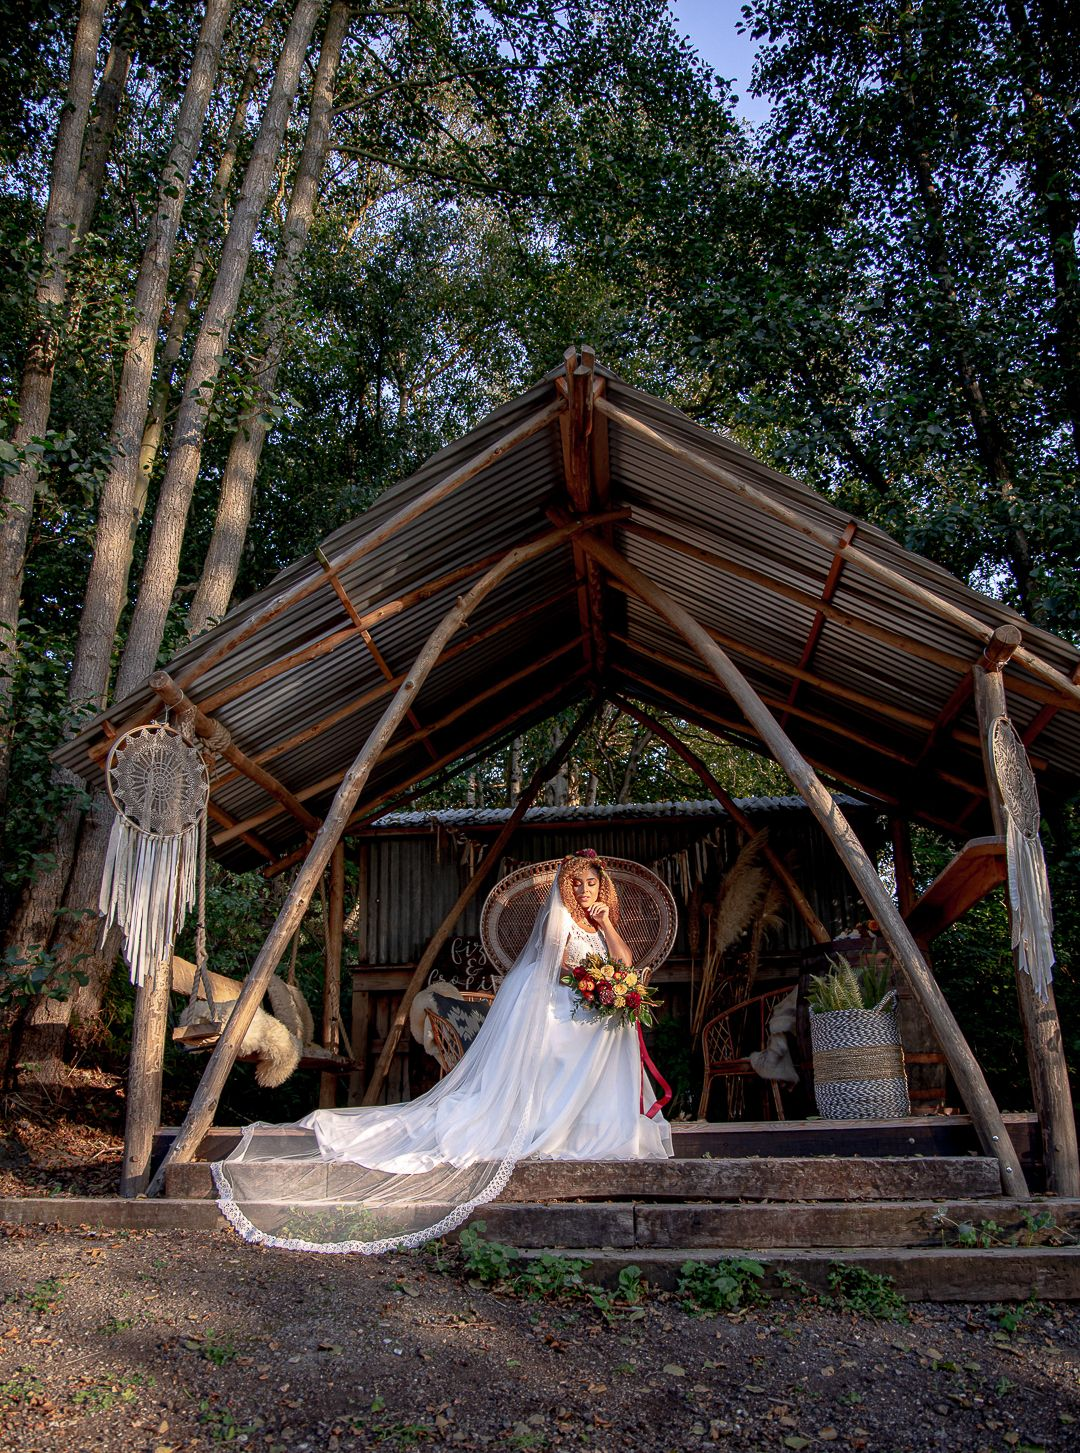 Bride and Groom in a hut at a festival wedding